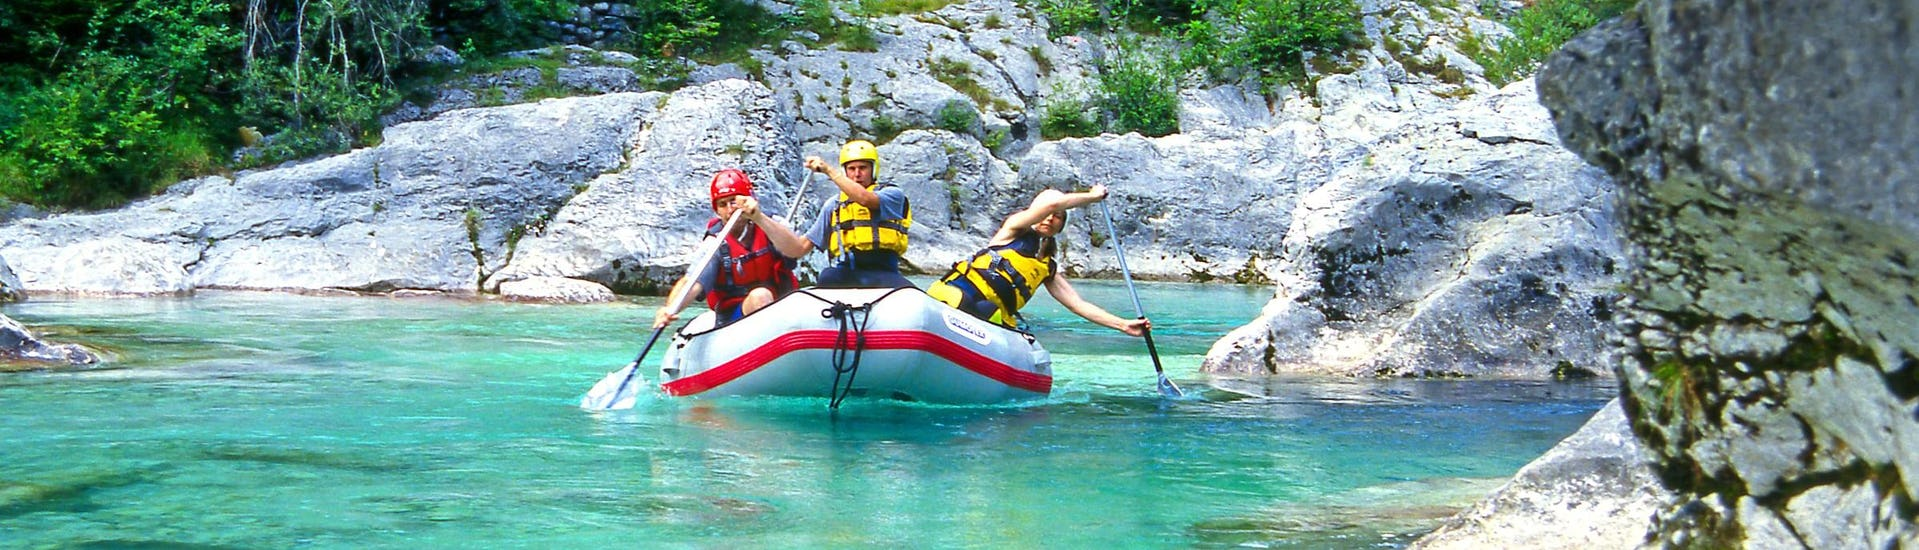 A group of young people enjoying some white water rafting fun in the rafting & canyoning hotspot of Sušec.